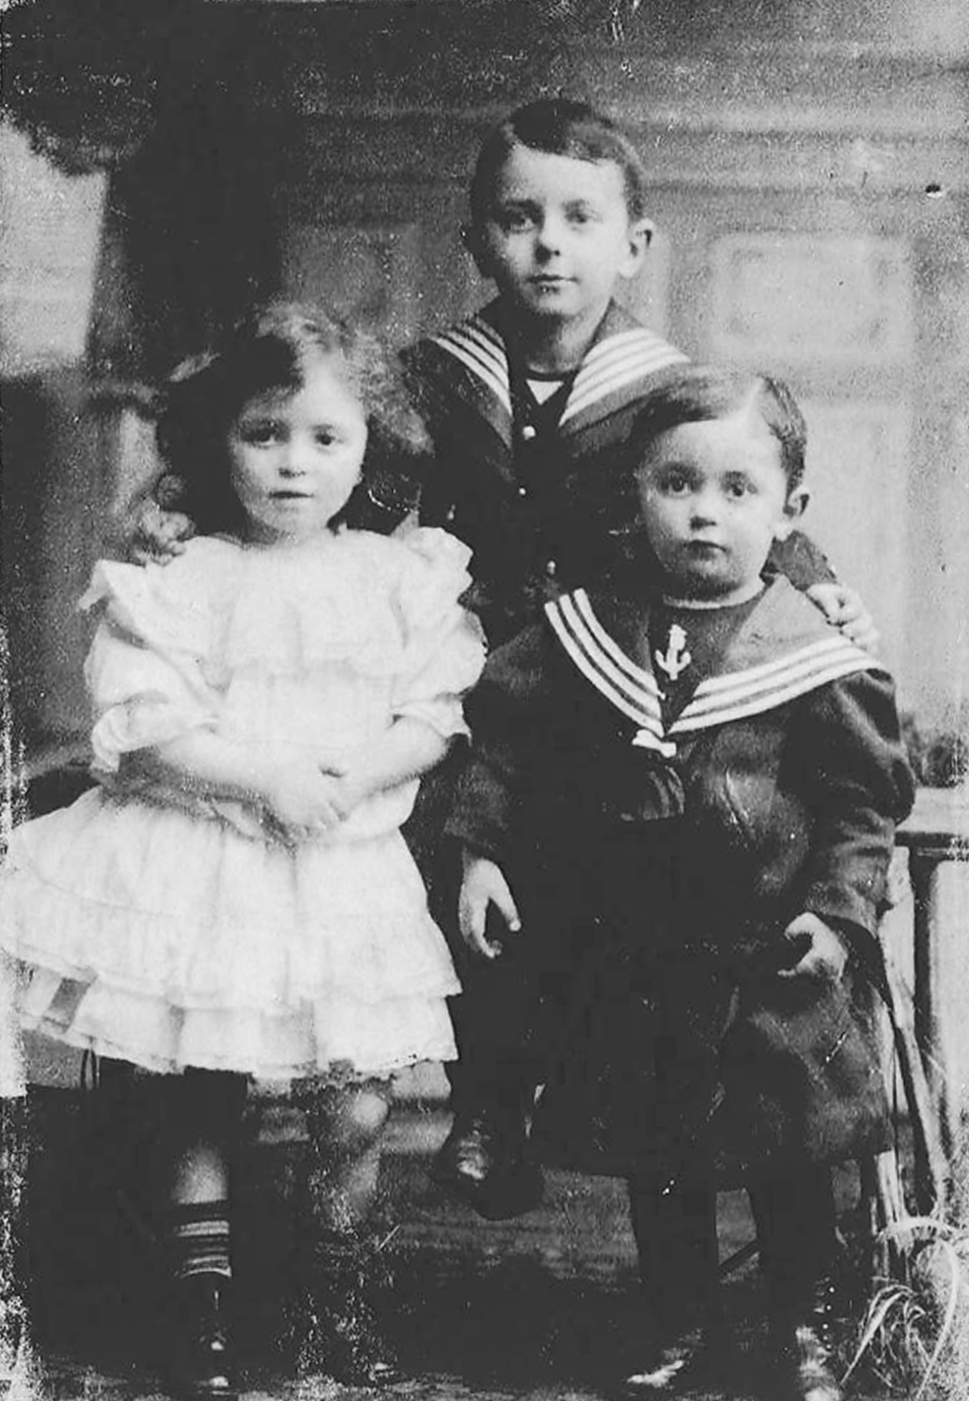 Elsa with her older brothers Günter and Gerhart. This was likely taken in Papa's photo studio in Hamburg.